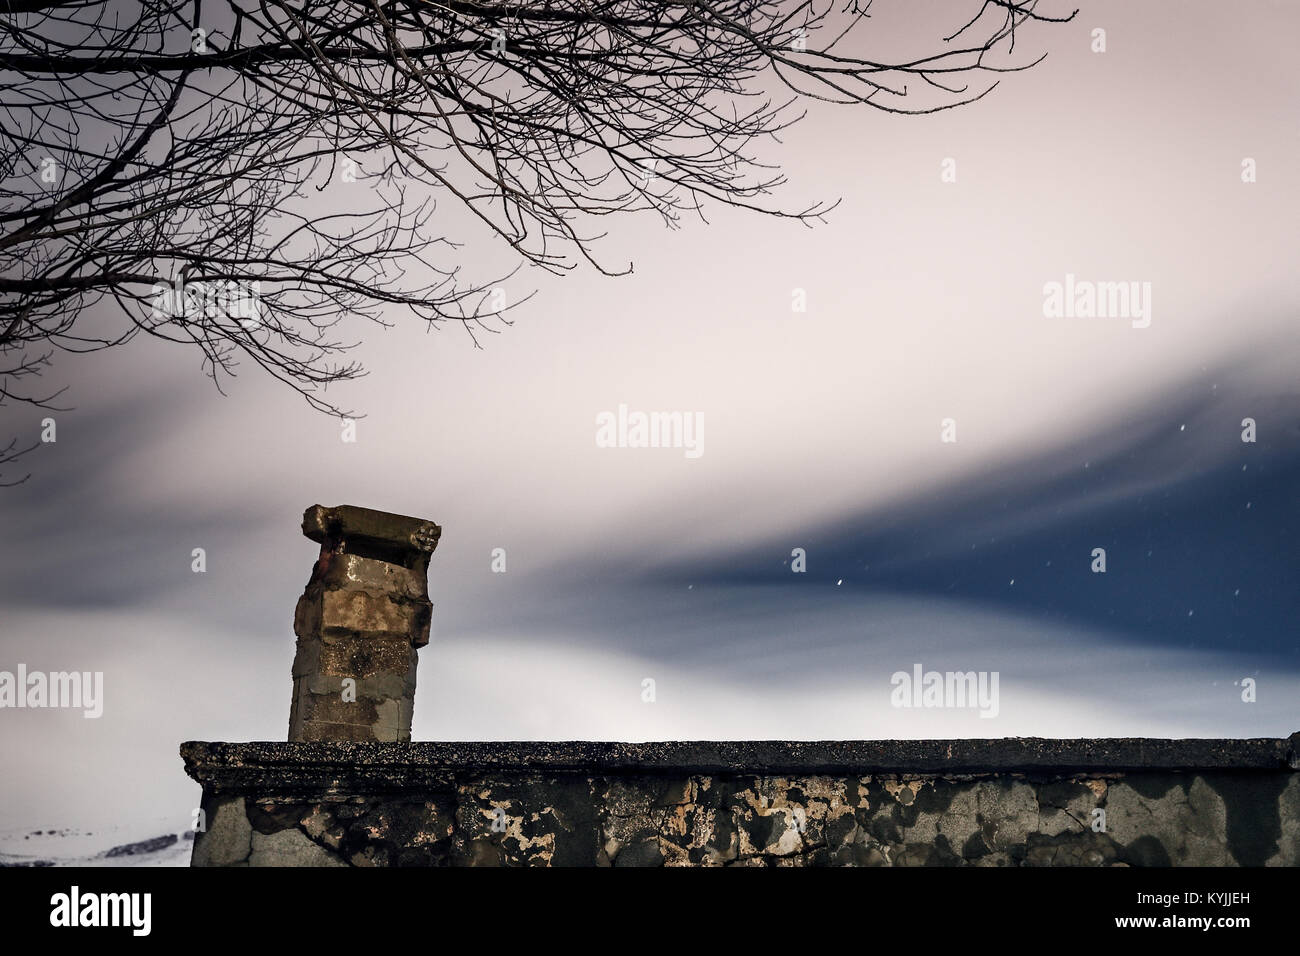 Night starry sky under a veil of white smoky clouds over the roof of an old abandoned house, beautiful nature near - Stock Image